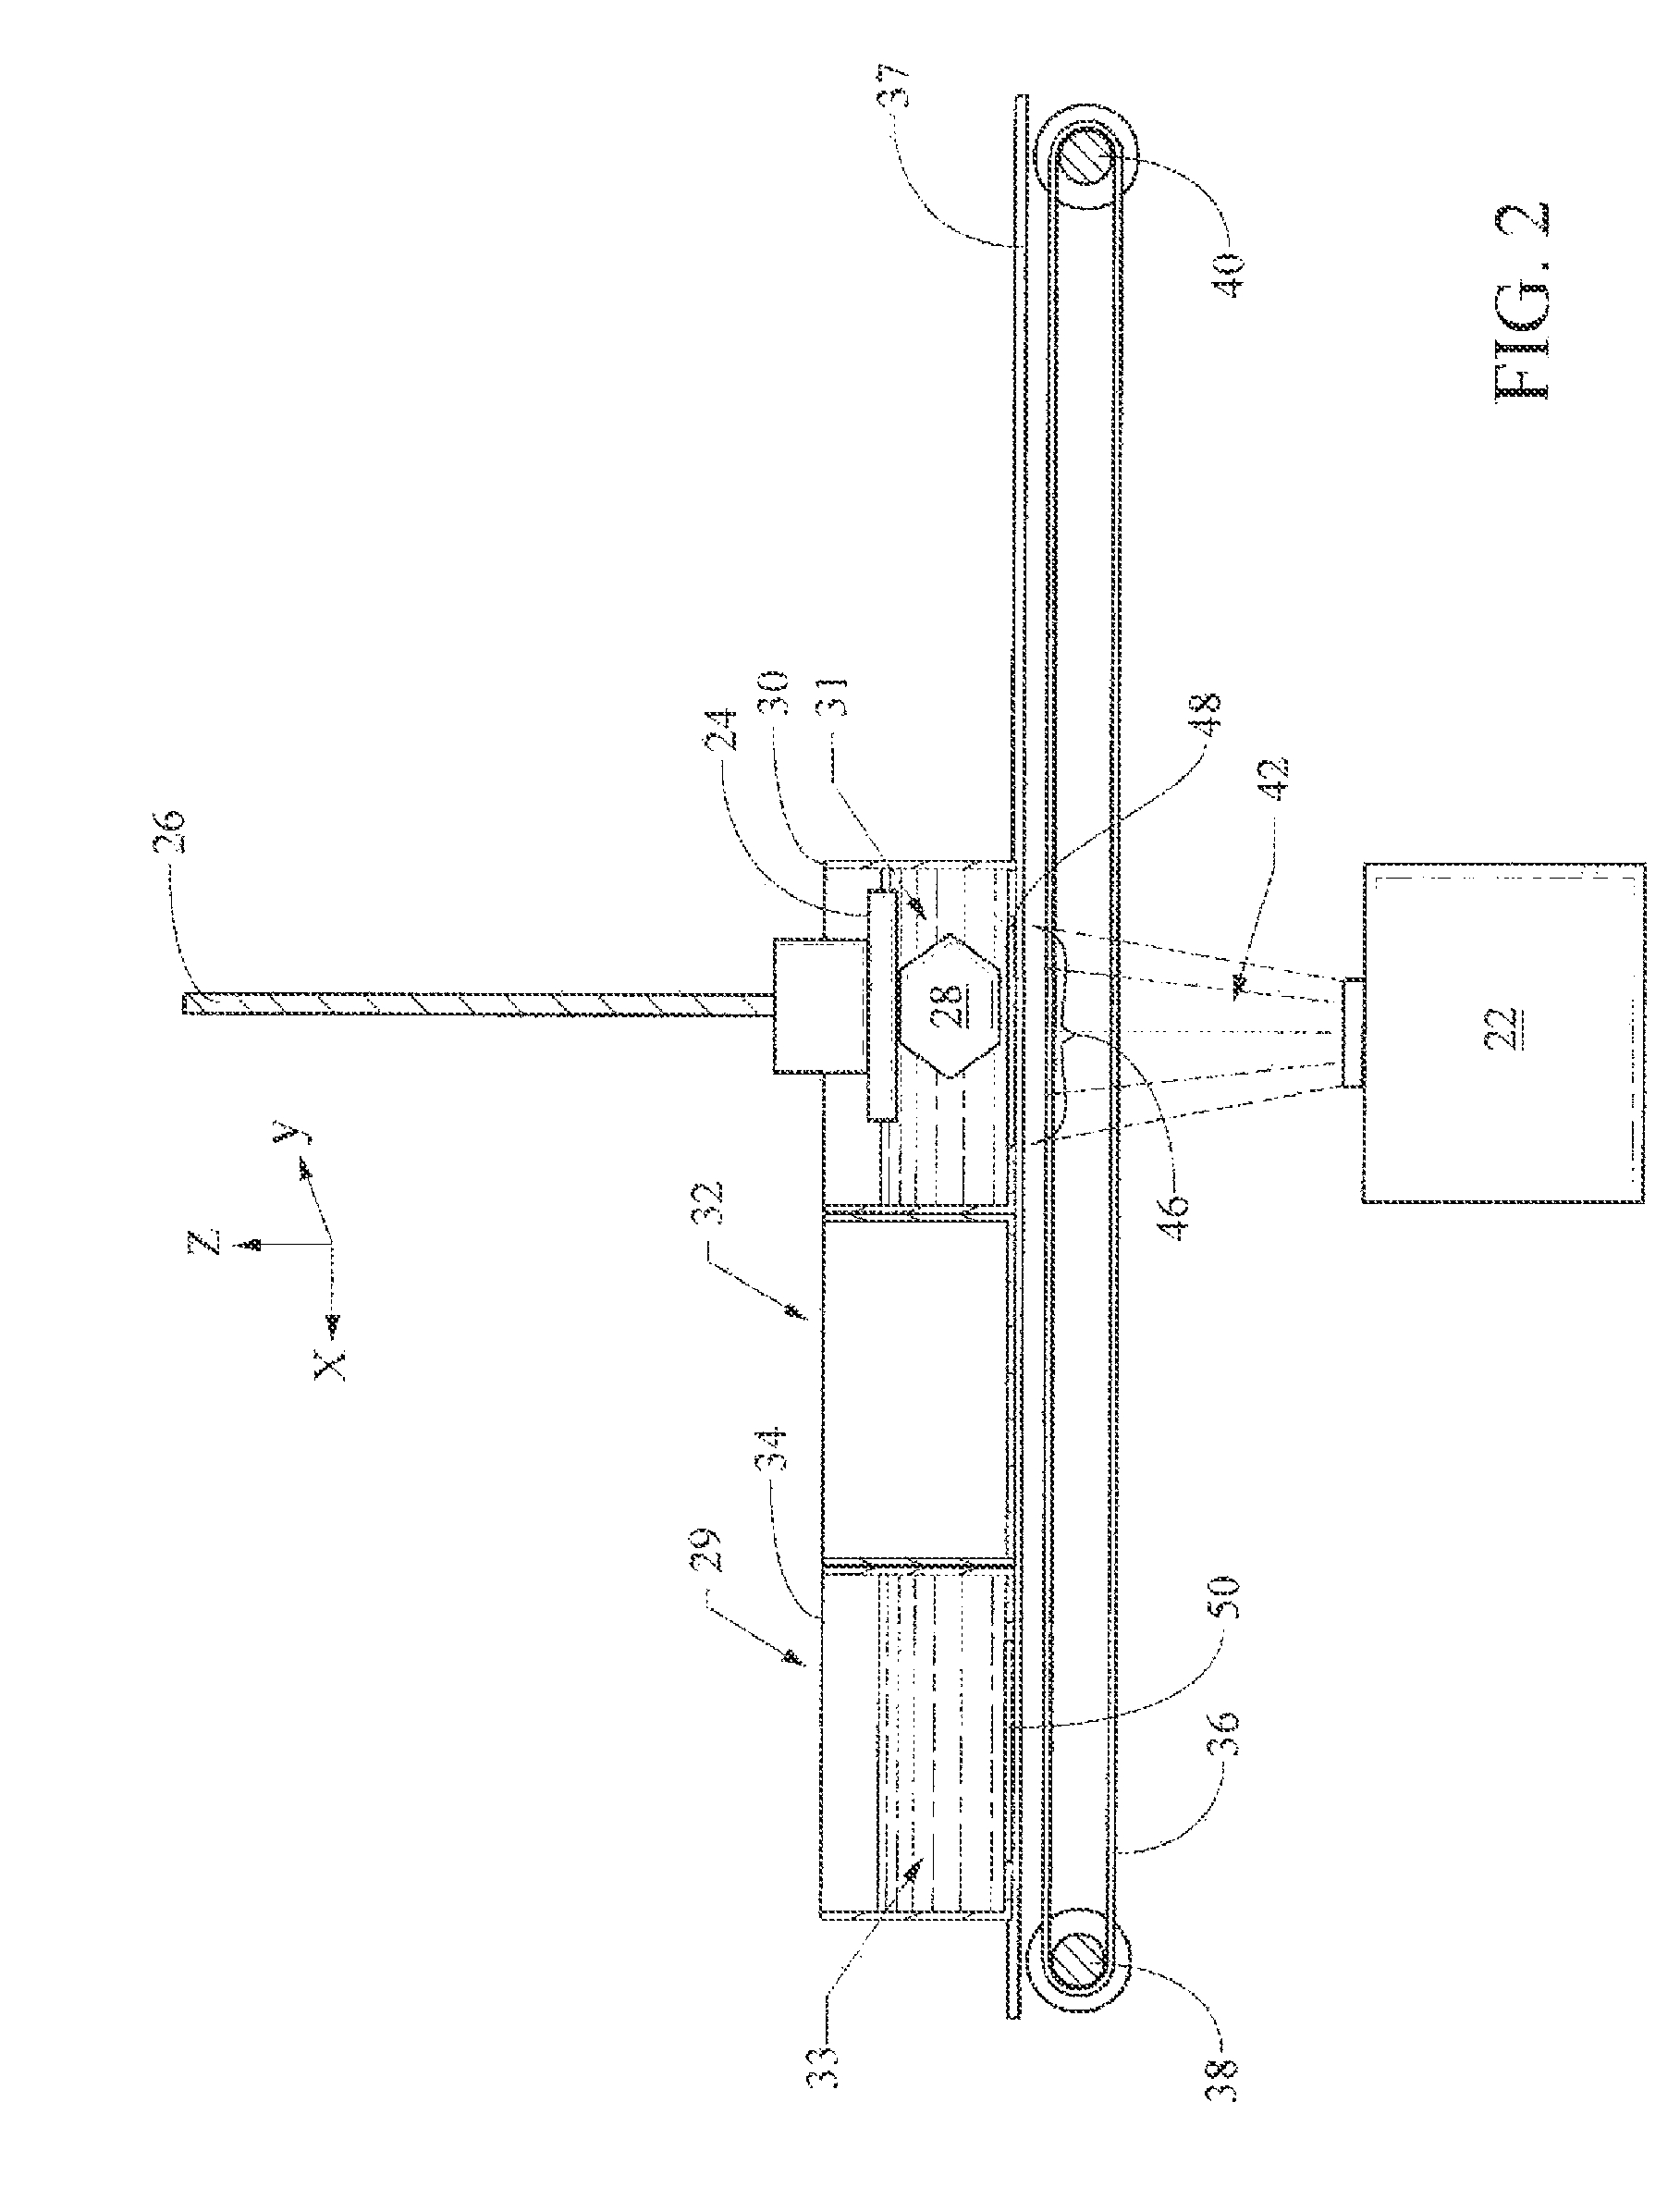 Patent Us8801418 - Method And Apparatus For Making Three-Dimensional - Briggs And Stratton Wiring Diagram 18 Hp